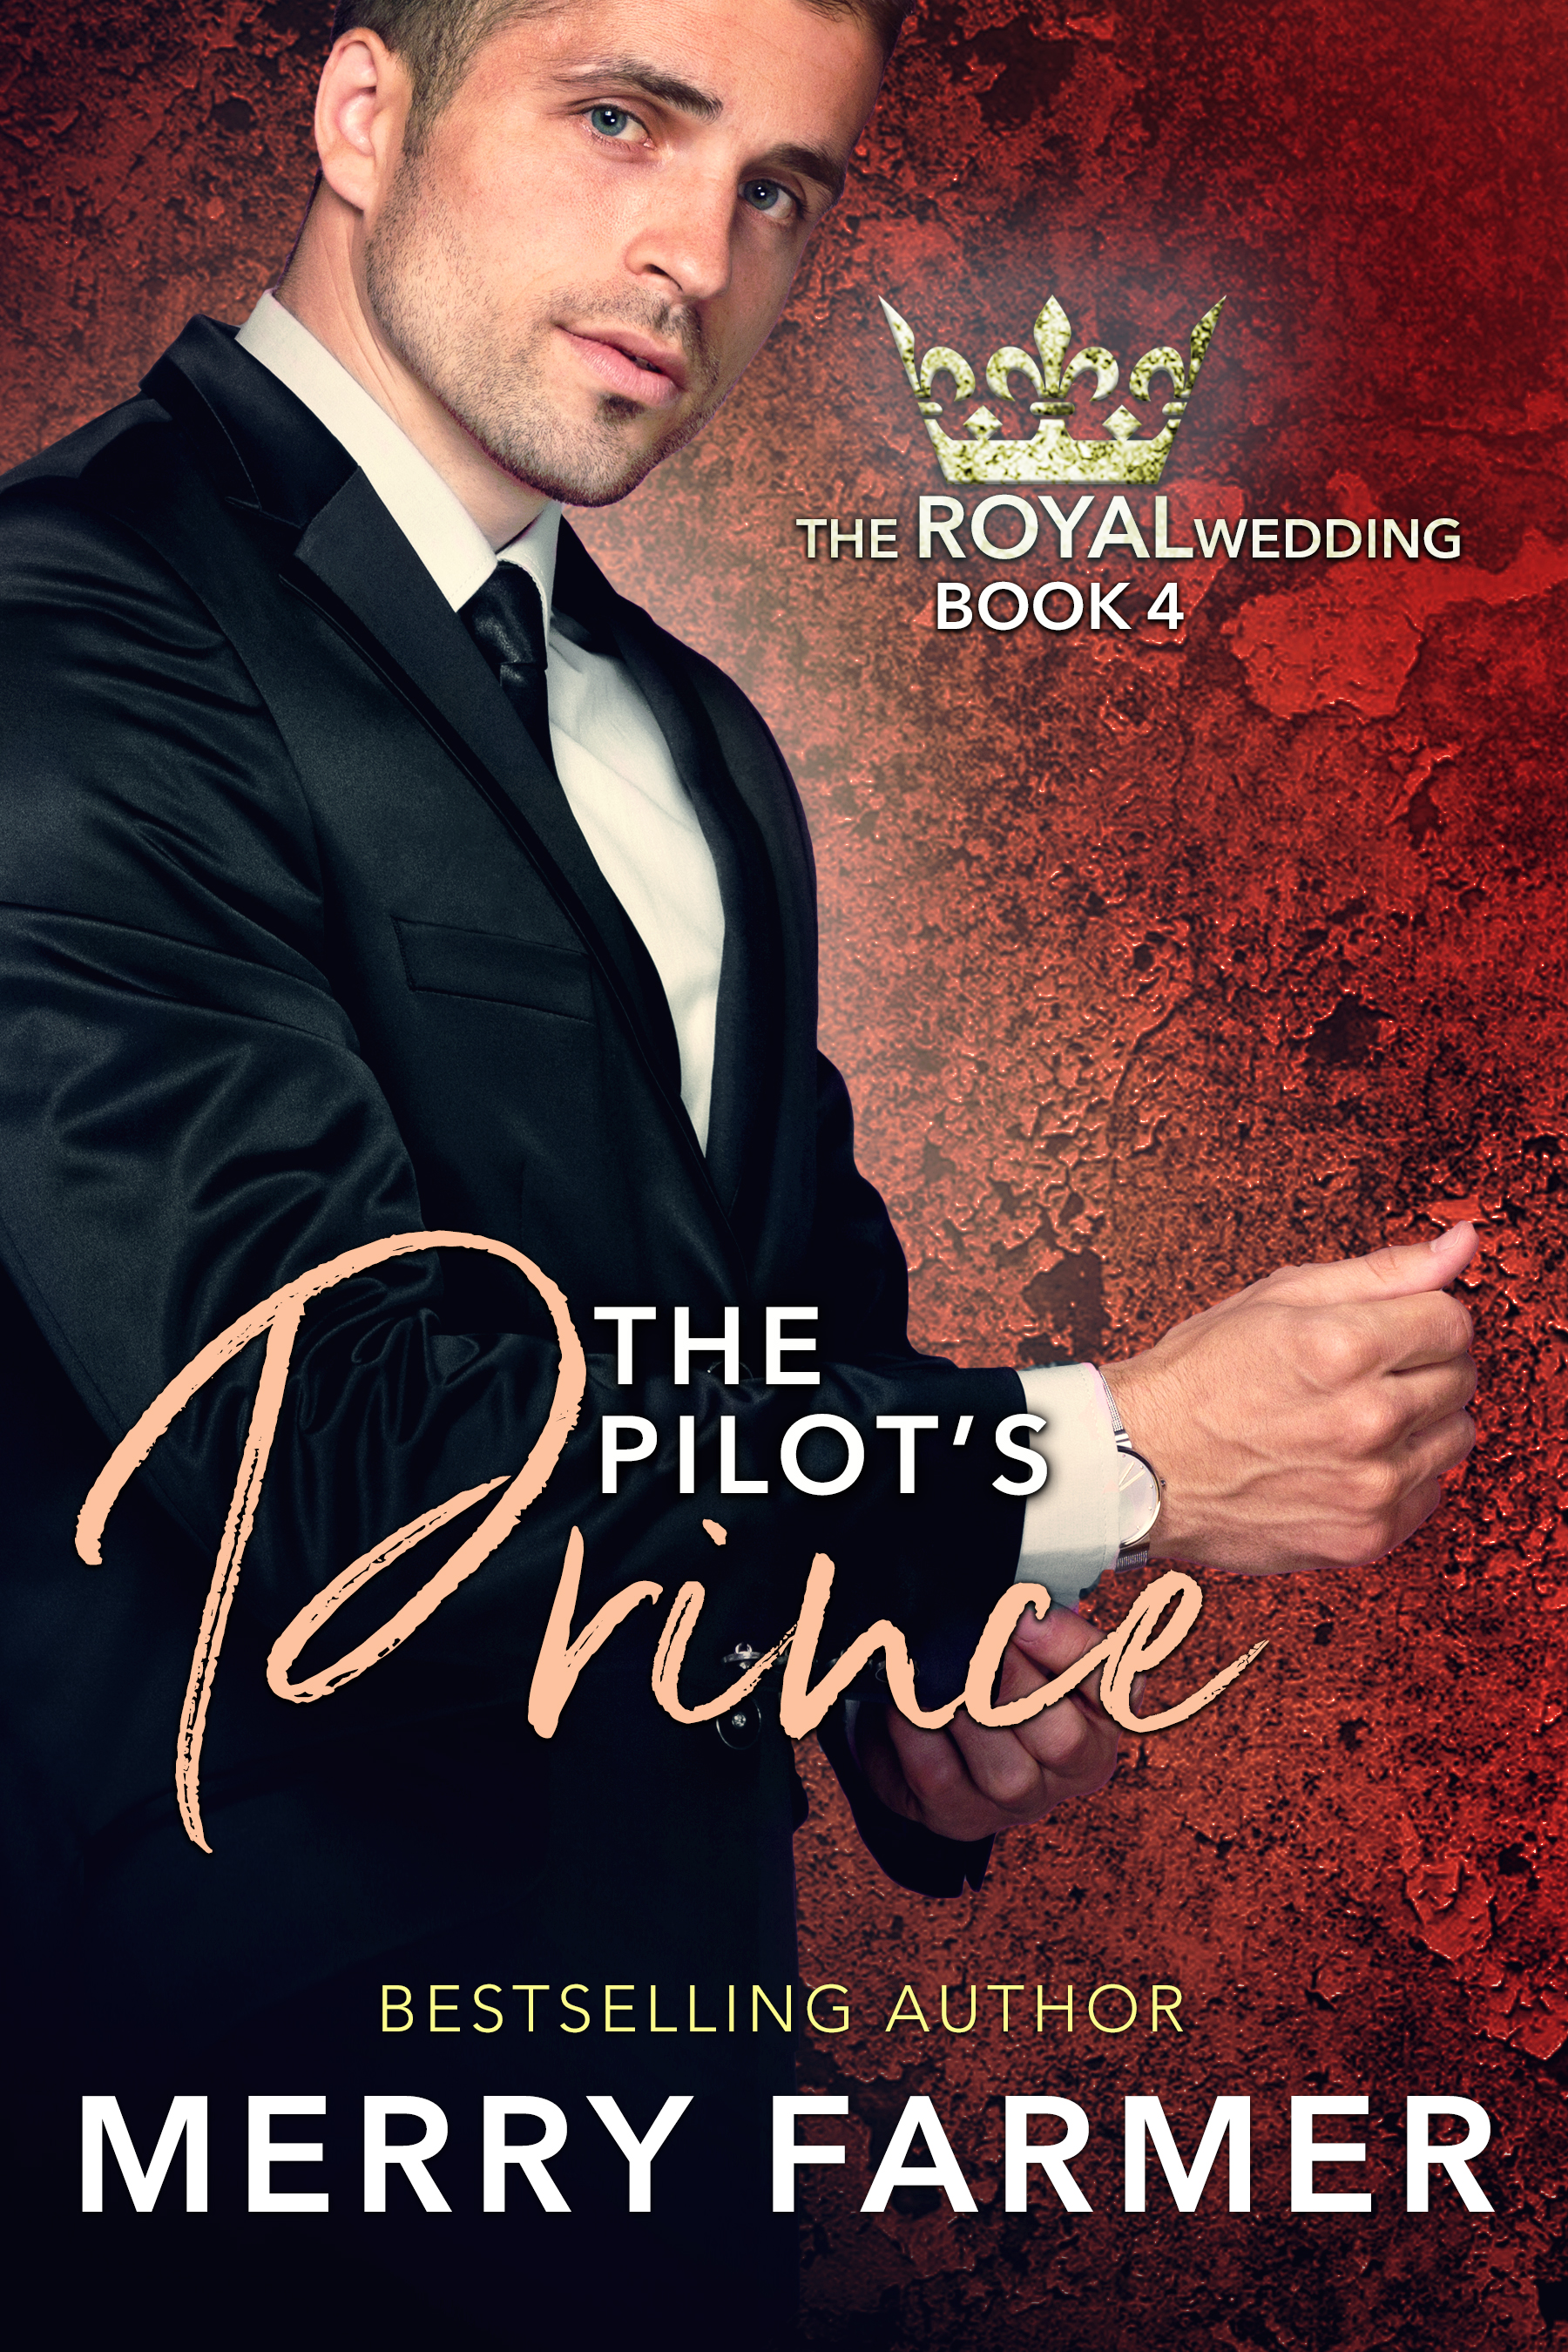 """The Pilot's Prince - by Merry Farmer (Book Four) - Prince Mikael """"Mack"""" Magnusson has always been the black sheep of the Aegirian royal family. Instead of indulging in the perks of his royal status, he wanted to become a humble fisherman and to protect the environment. But his dreams were cut short when it was determined they weren't lofty enough, and ever since, he's been adrift, looking for a place to belong.Gloria Swann belonged in the RAF as a combat support pilot, but when her ambition to become a fast-jet fighter pilot was denied, she too was left out in the cold, wondering where she fit in. All she's ever wanted was to stand up for a cause she believes in and to fight for what is right.When Gloria literally crashes into Mack's life, just as the preparations for the royal wedding reach their climax, not only does Mack find himself with a powerful ally as another attempt to stop the wedding is made, he finds himself falling in love. The connection Gloria and Mack feel proves that soulmates do exist, and that love can conquer all.And we might just get to see who's been trying to stop the royal wedding too…maybe….PLEASE BE ADVISED: Steam Level - Hot"""